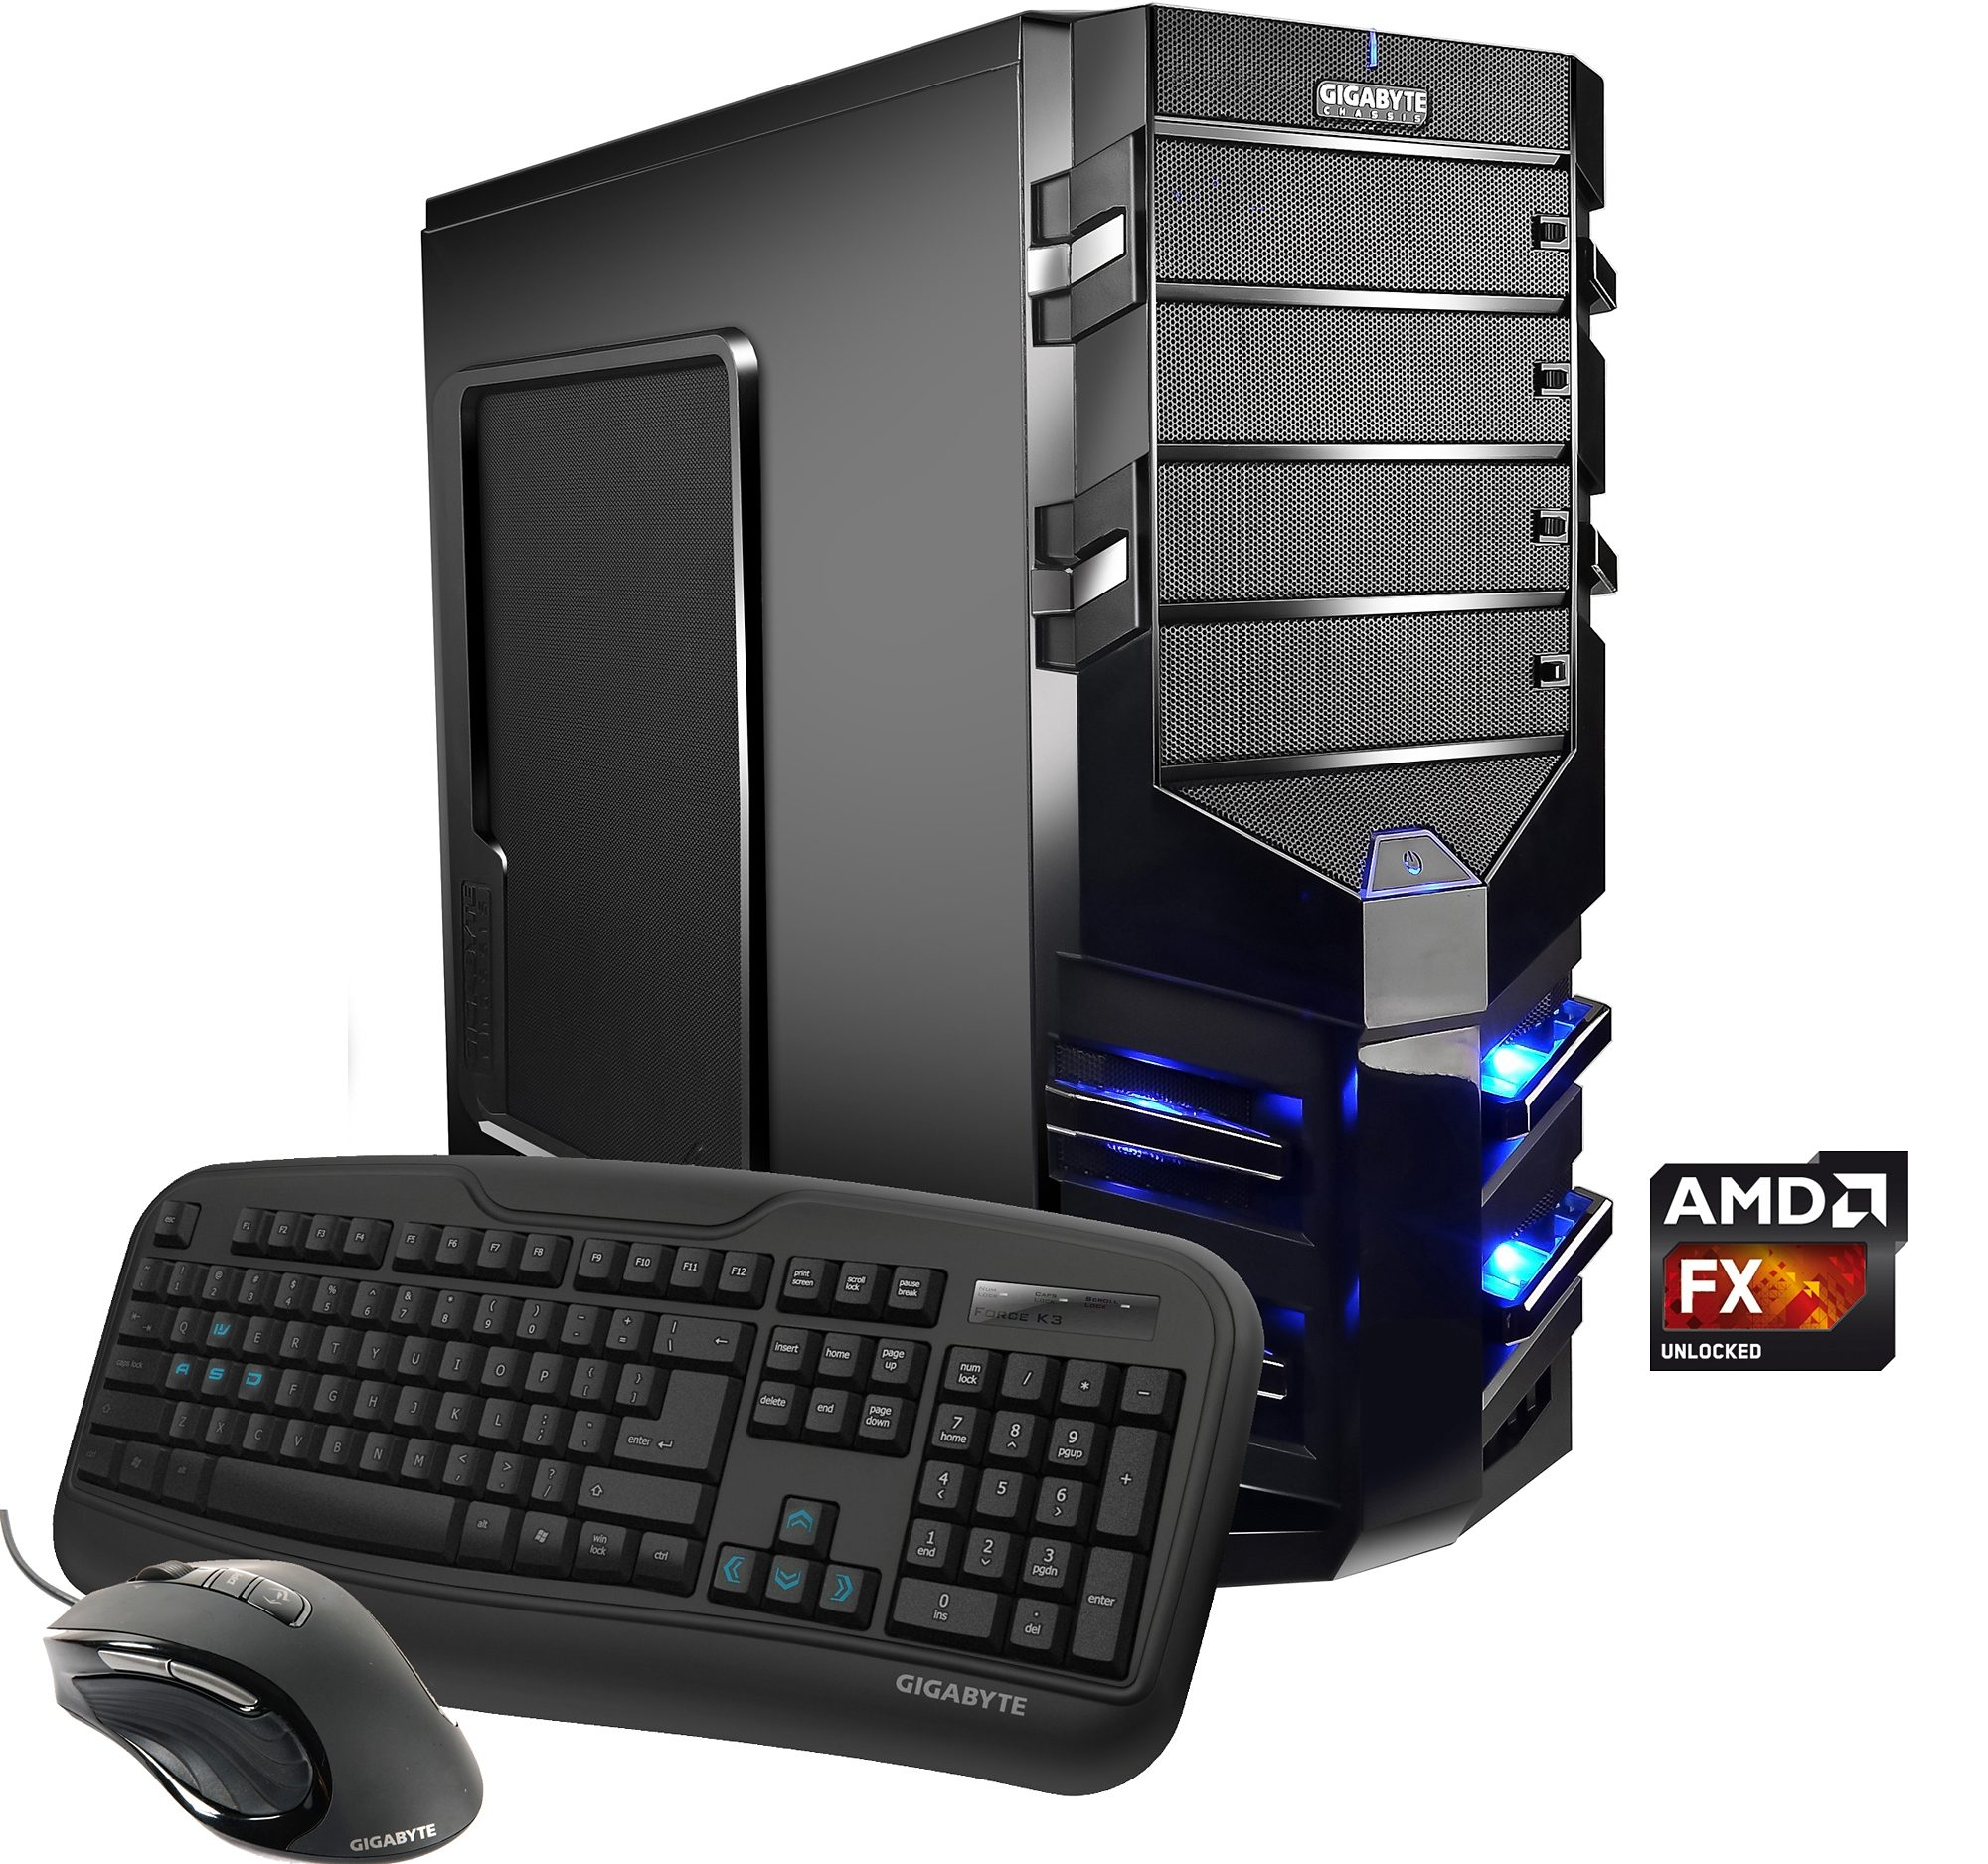 Hyrican Gaming PC AMD FX-8350, 16GB, 1TB + 120GB SSD, R9 390, Windows 10 »Alpha Gaming 4877«